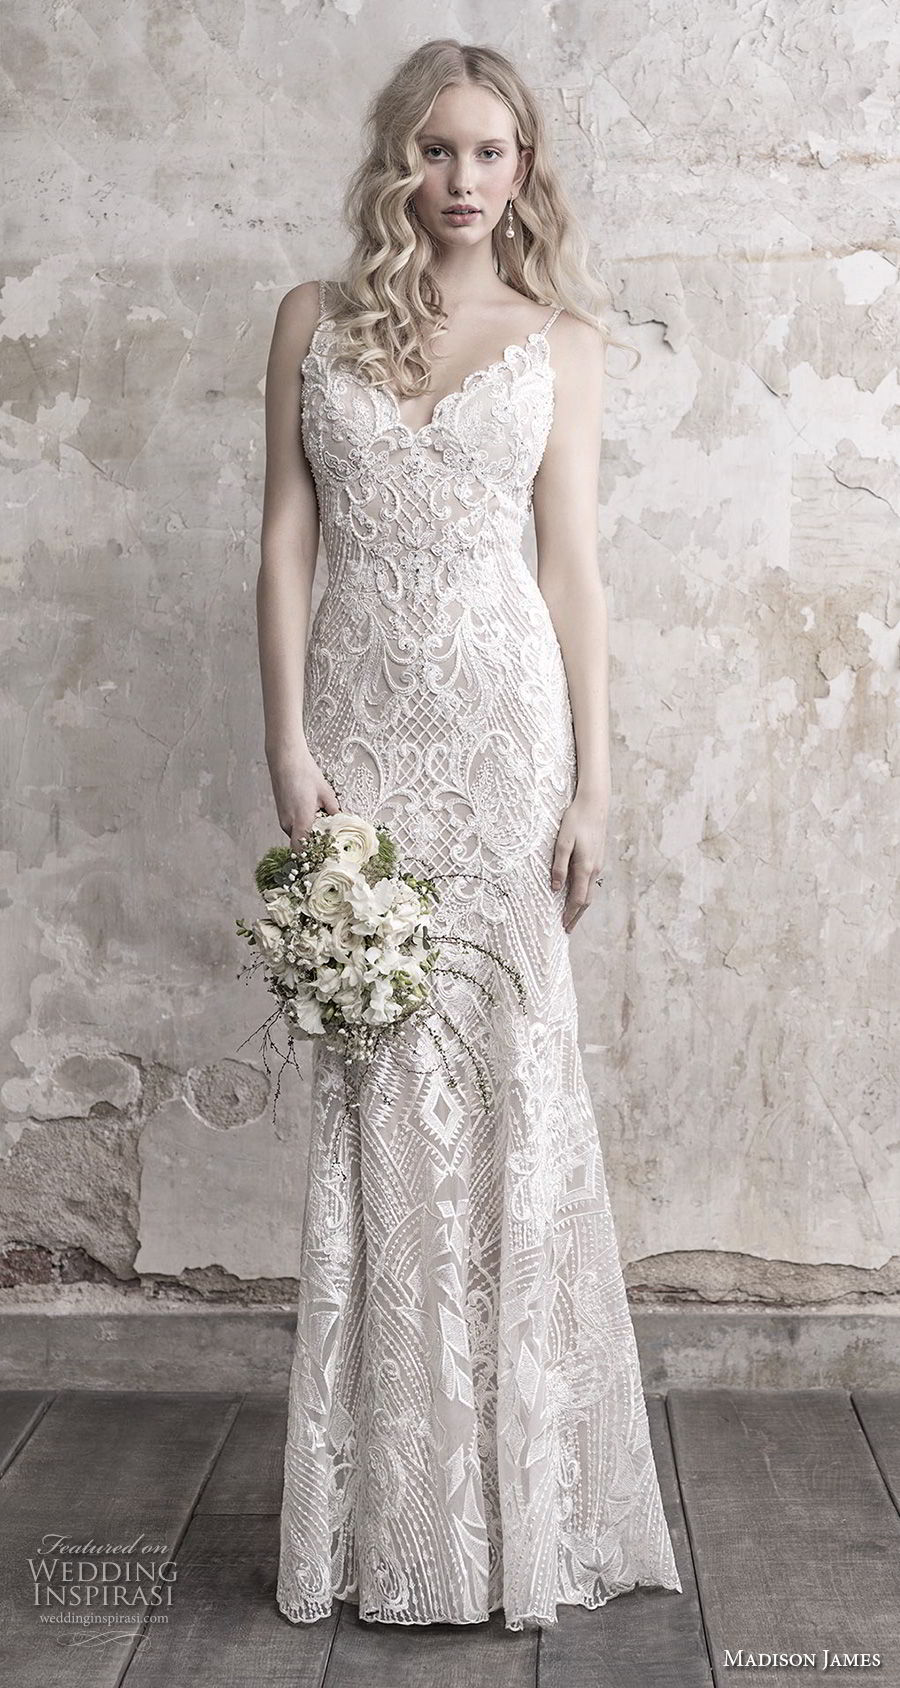 madison james fall 2018 bridal spaghetti strap sweetheart neckline full embellishment elegant sheath wedding dress open back chapel train (4) mv